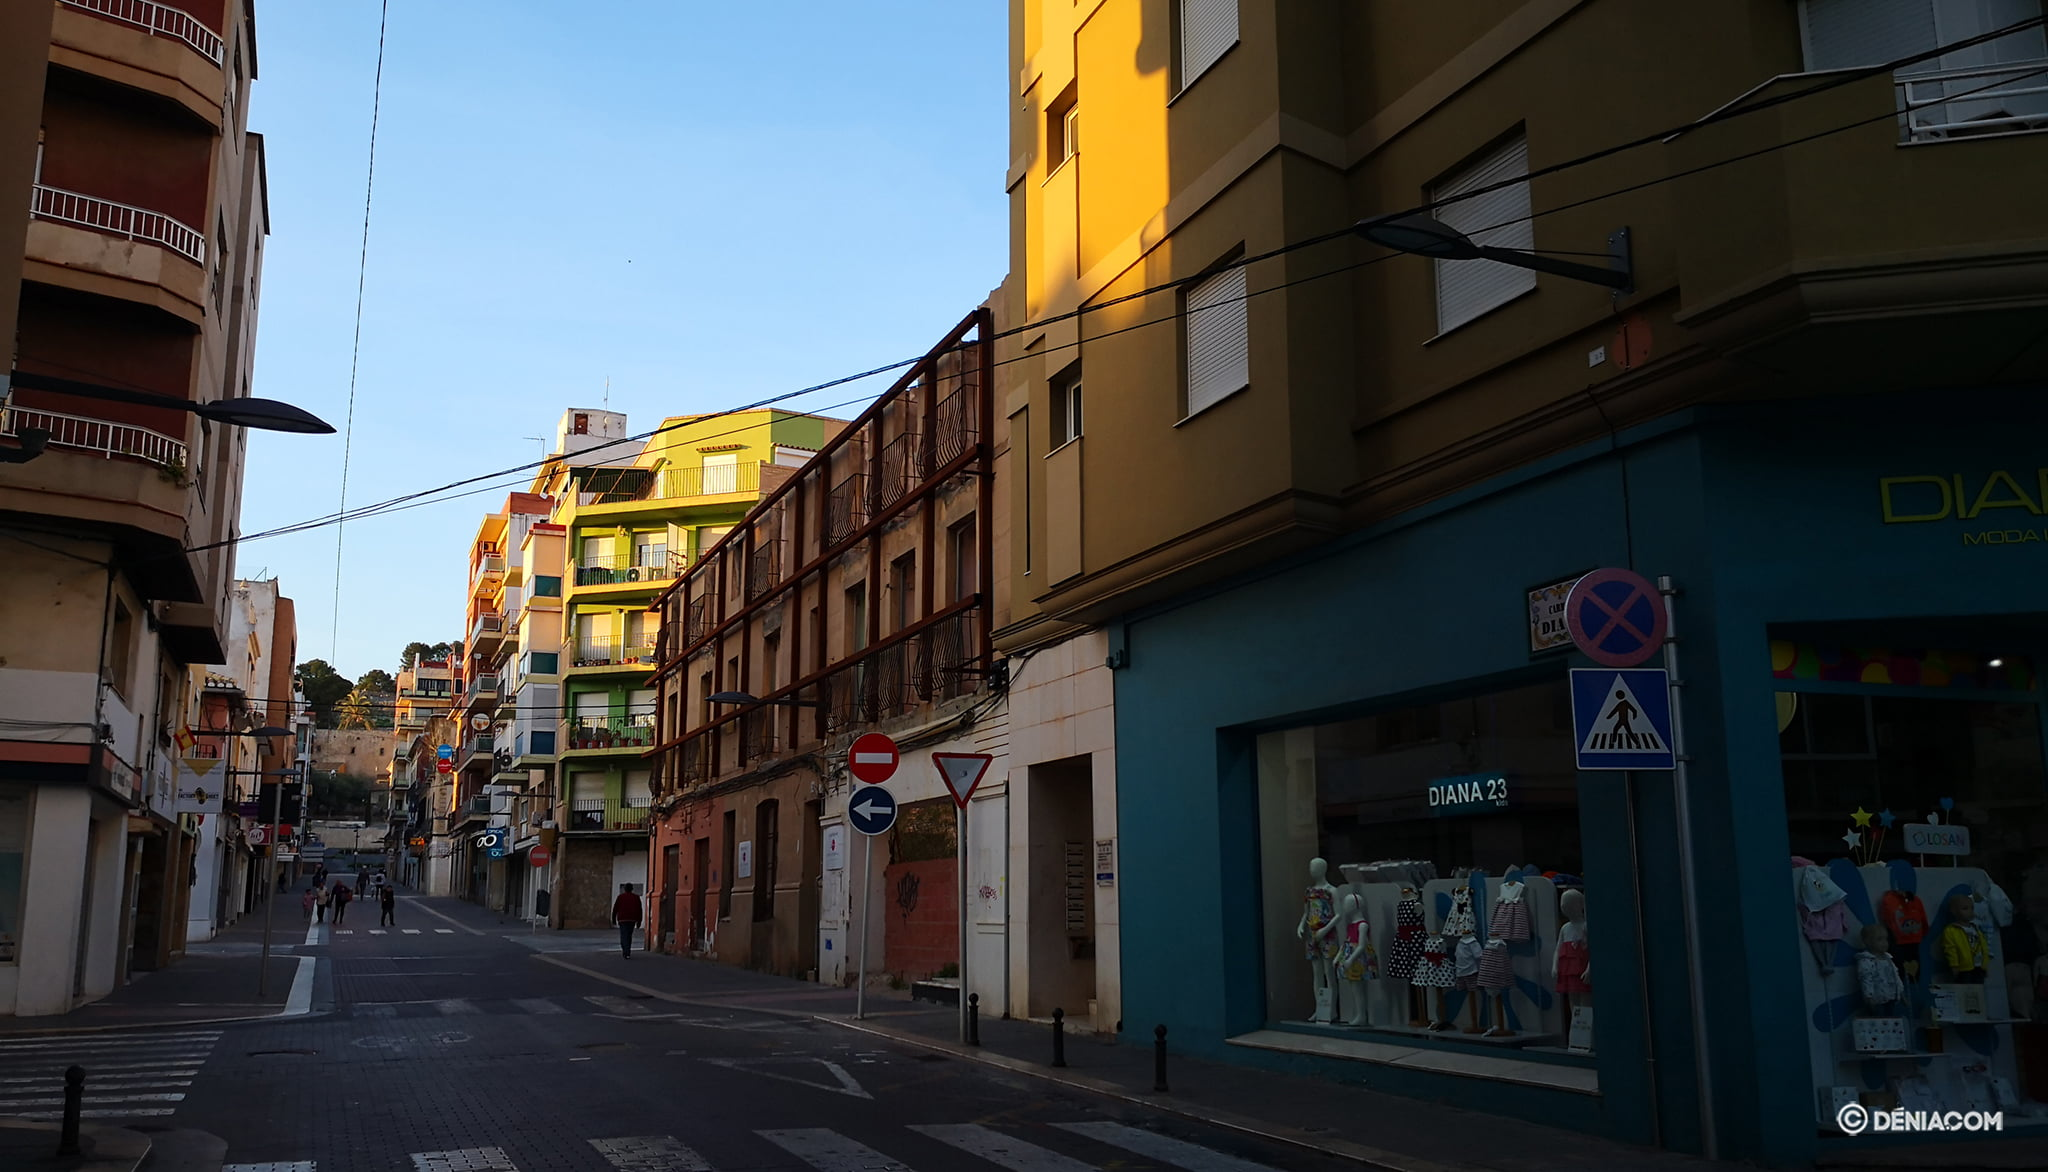 The deserted streets of Dénia 11